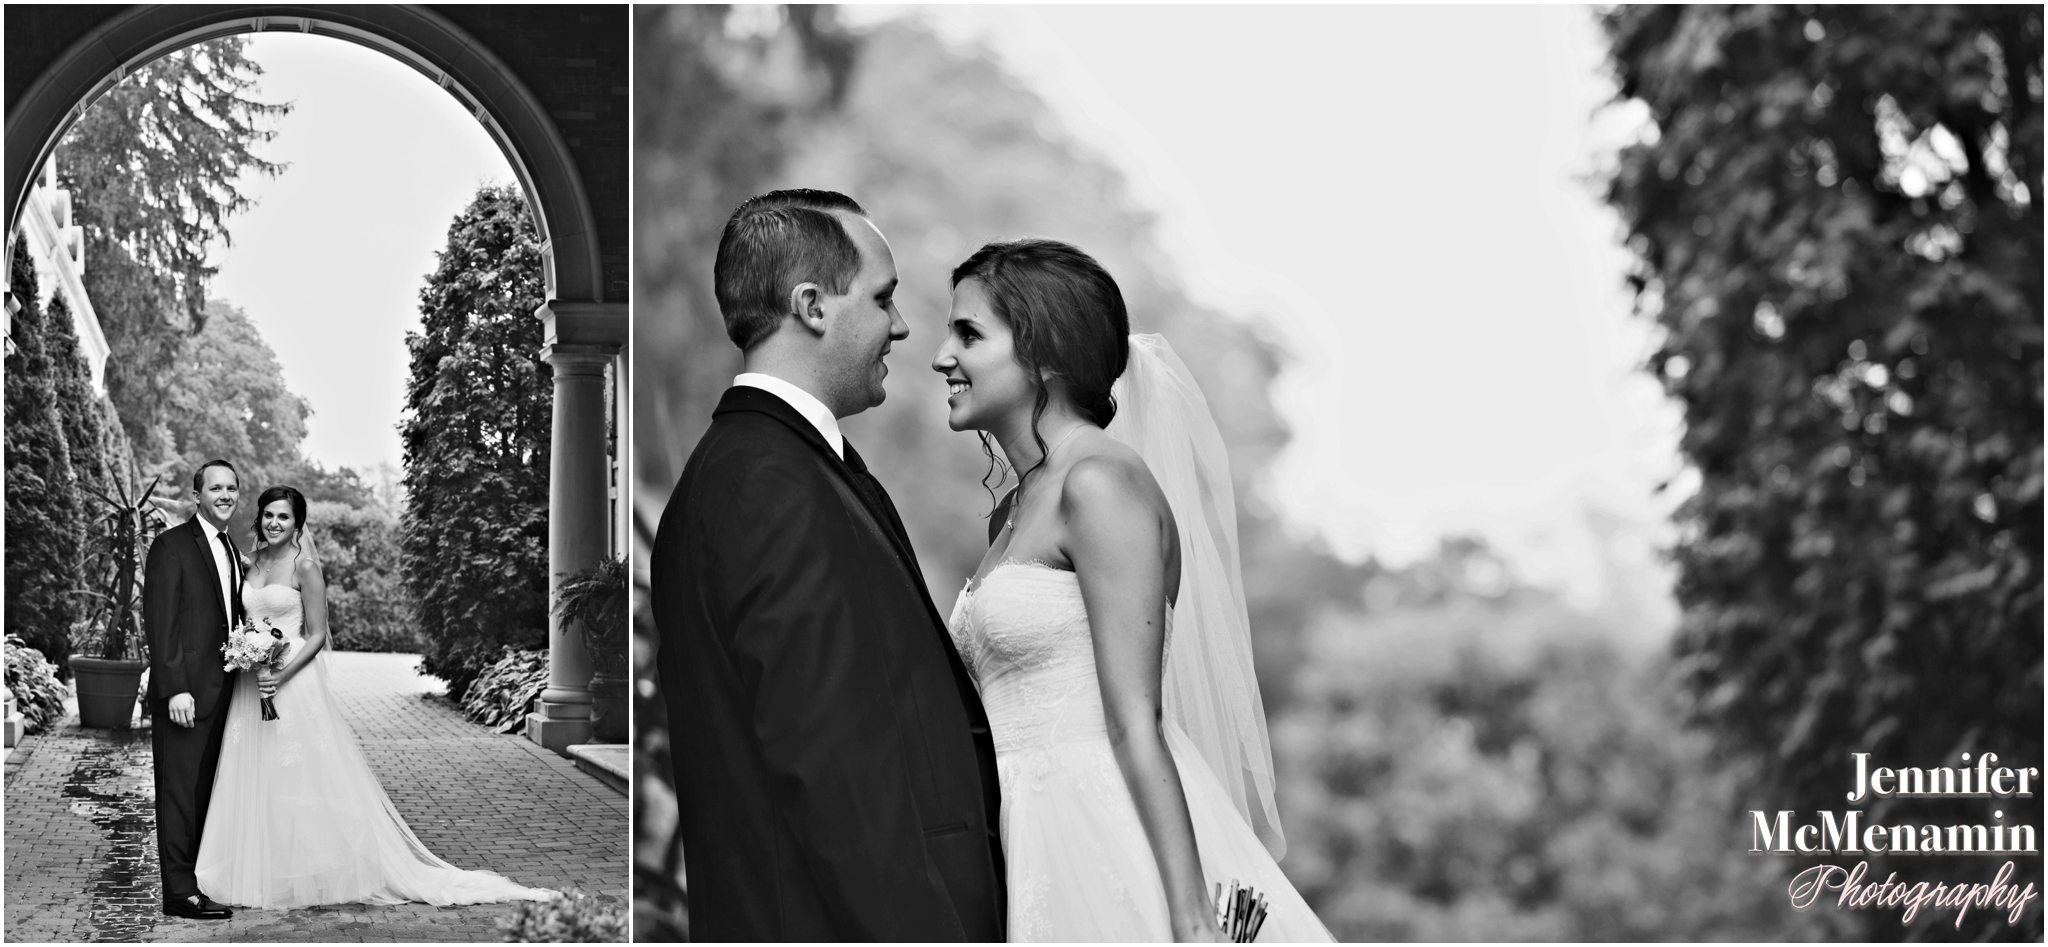 0043-BlumWilliams_01647bw-0311_JenniferMcMenaminPhotography_Evergreen-Museum-Carriage-House_Baltimore-wedding-photography_Baltimore-wedding-photographer